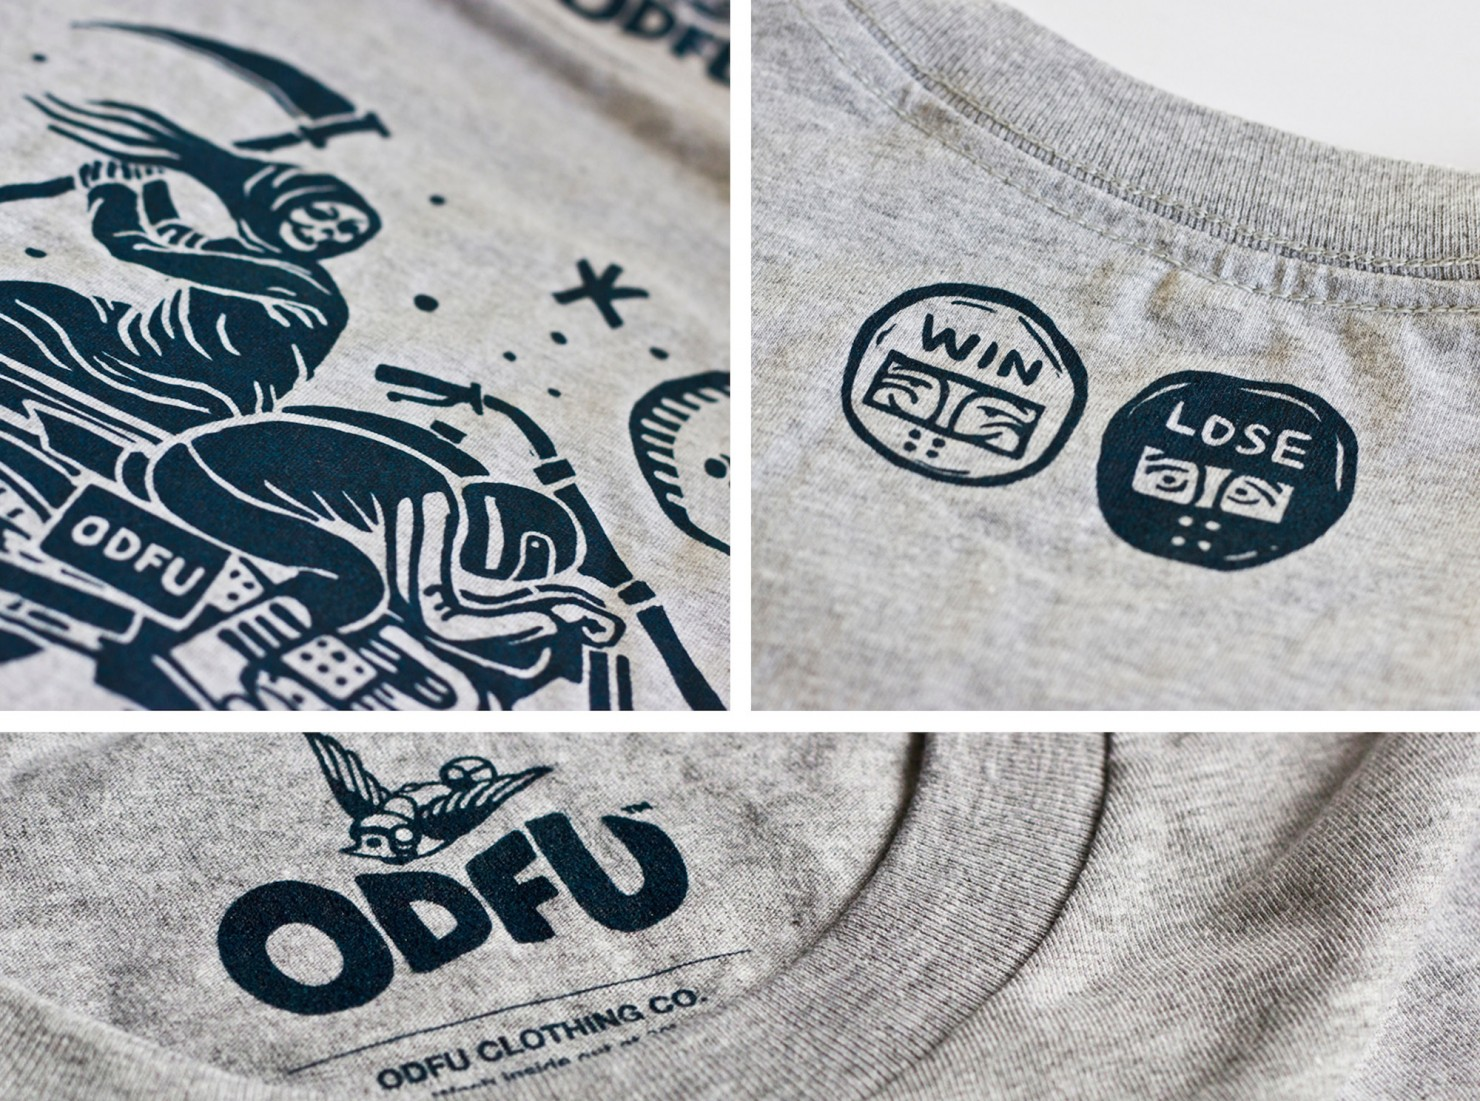 ODFU Win or Lose_detail